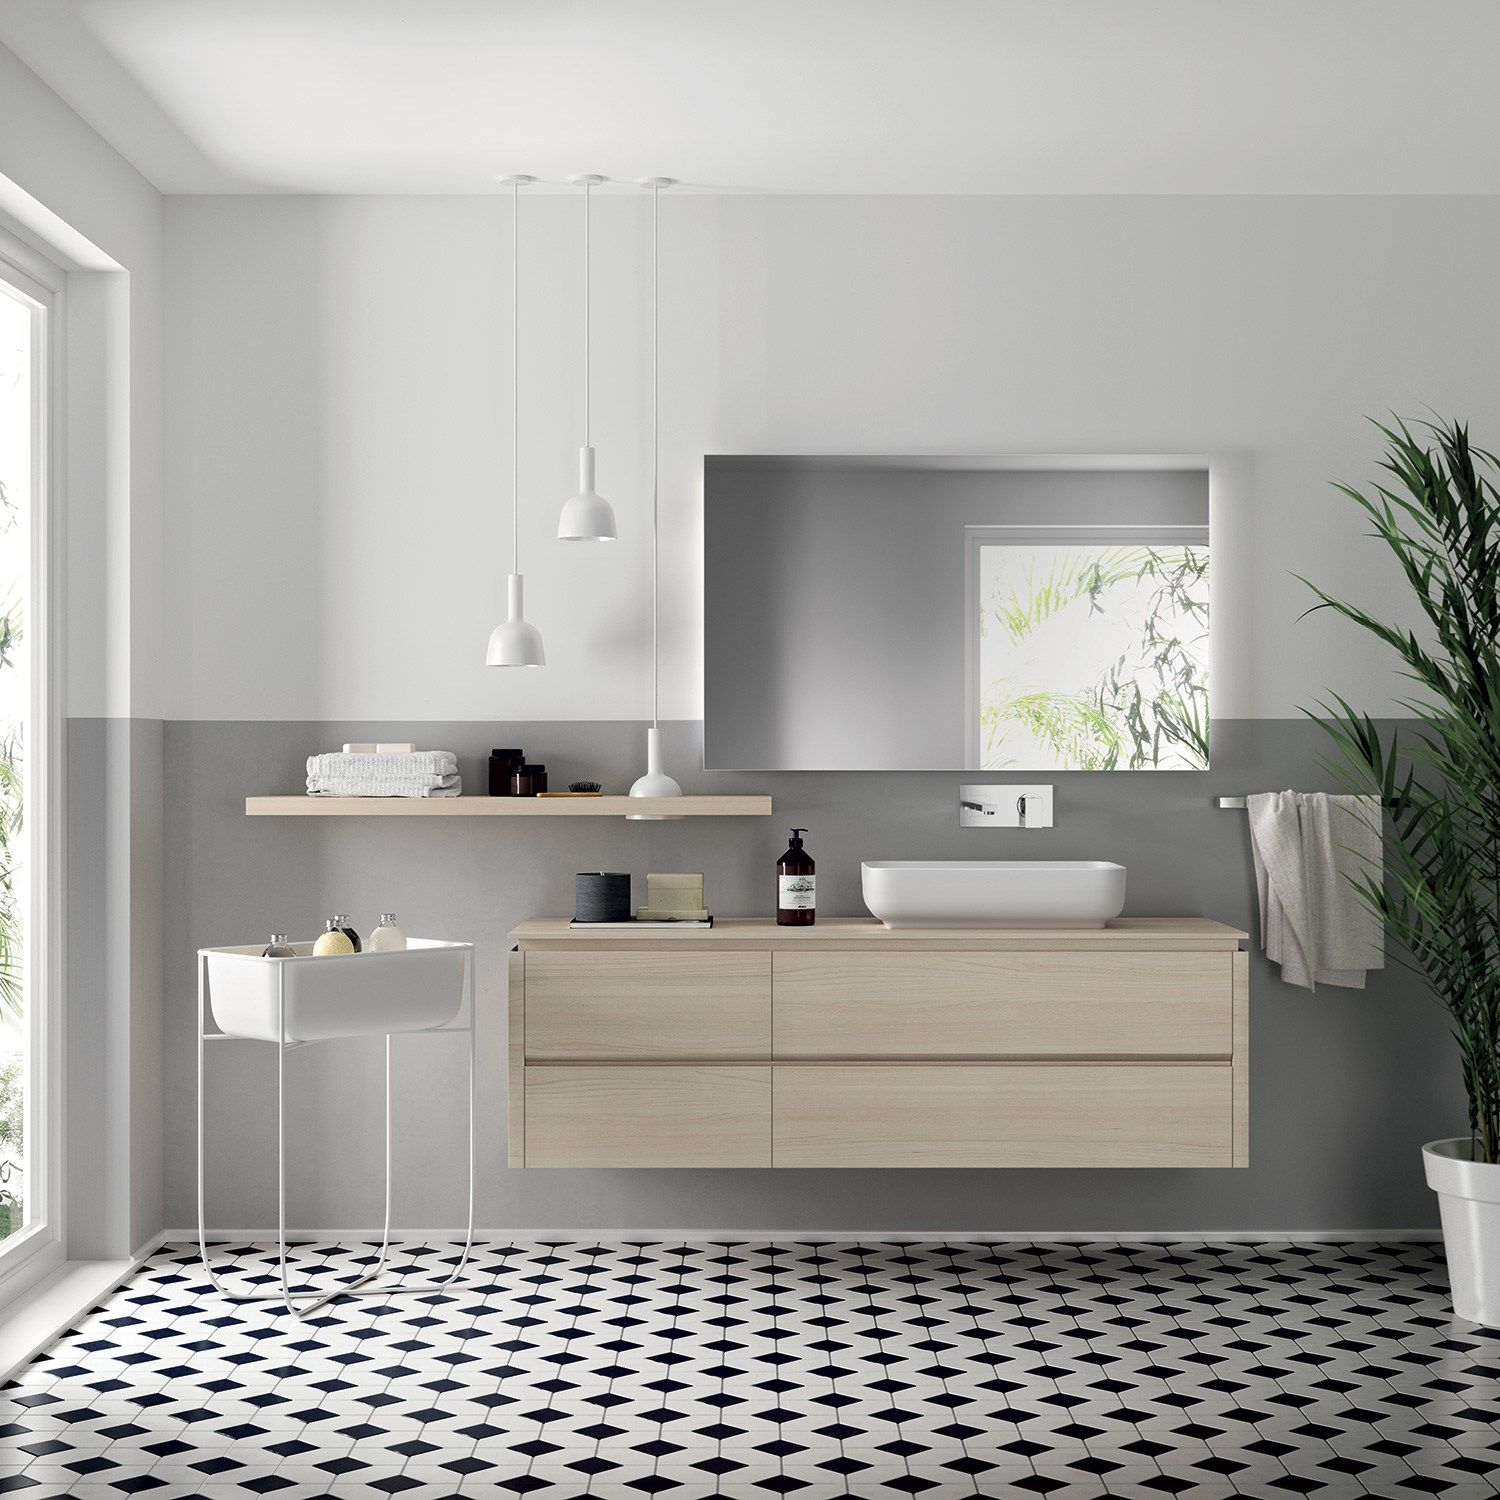 Bathroom Furniture Set Ki By Scavolini Bathrooms Design Nendo Scavolini Houston Bathroom